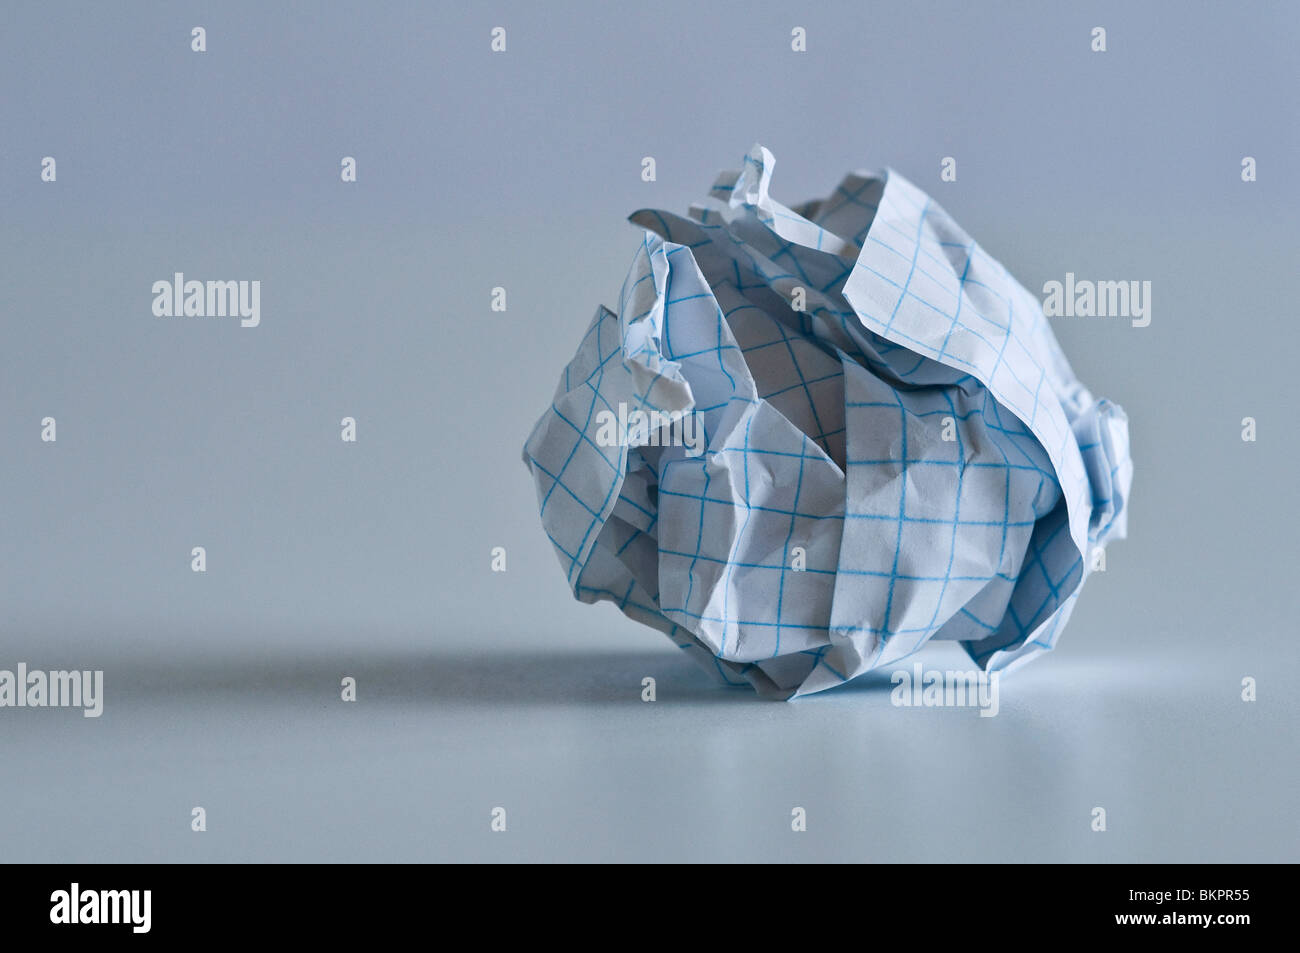 Crumpled ball of grid paper. - Stock Image